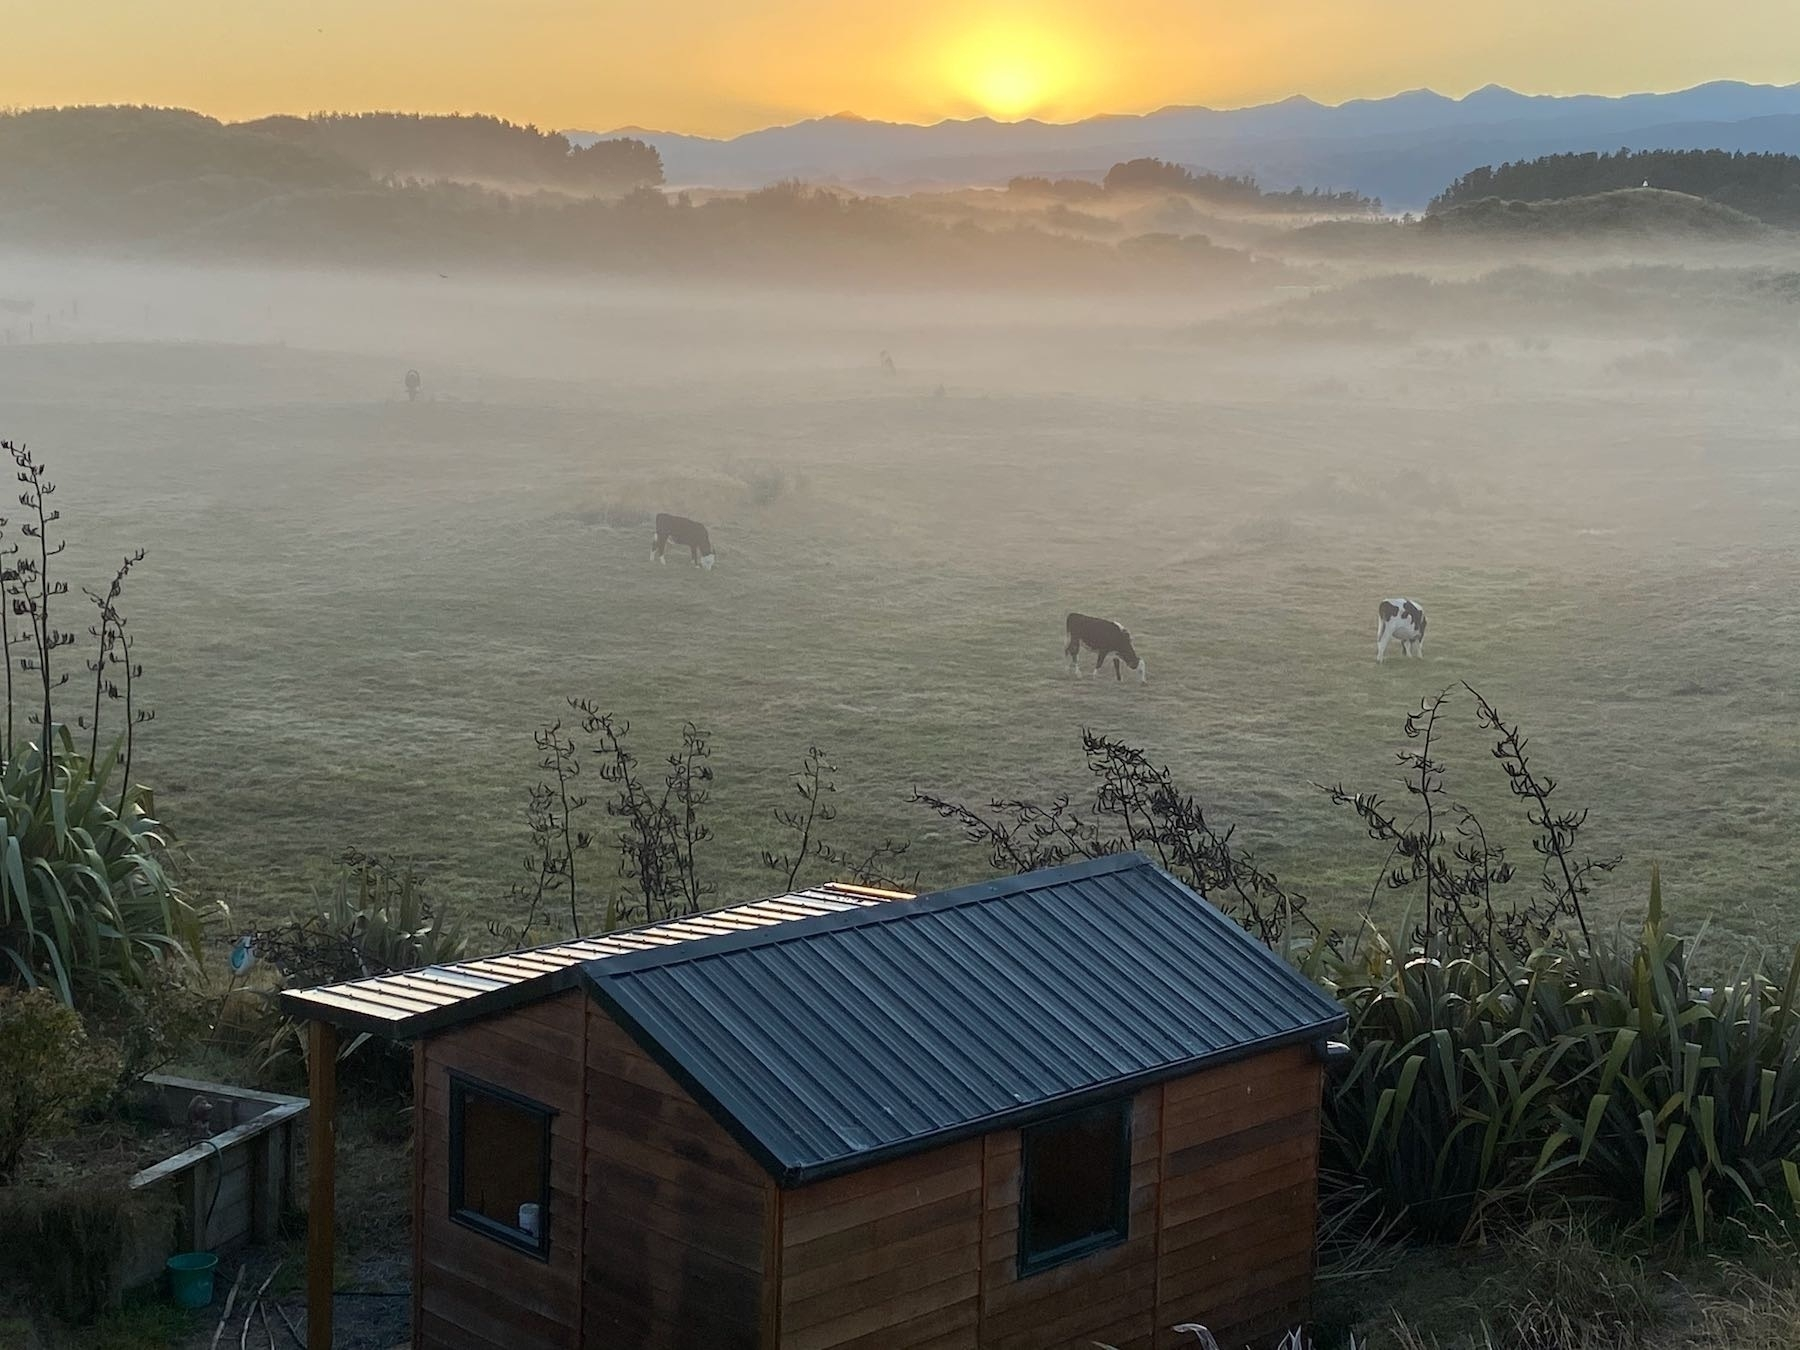 Sun rising behind mountains, cows in misty paddocks, a small building in the foreground.